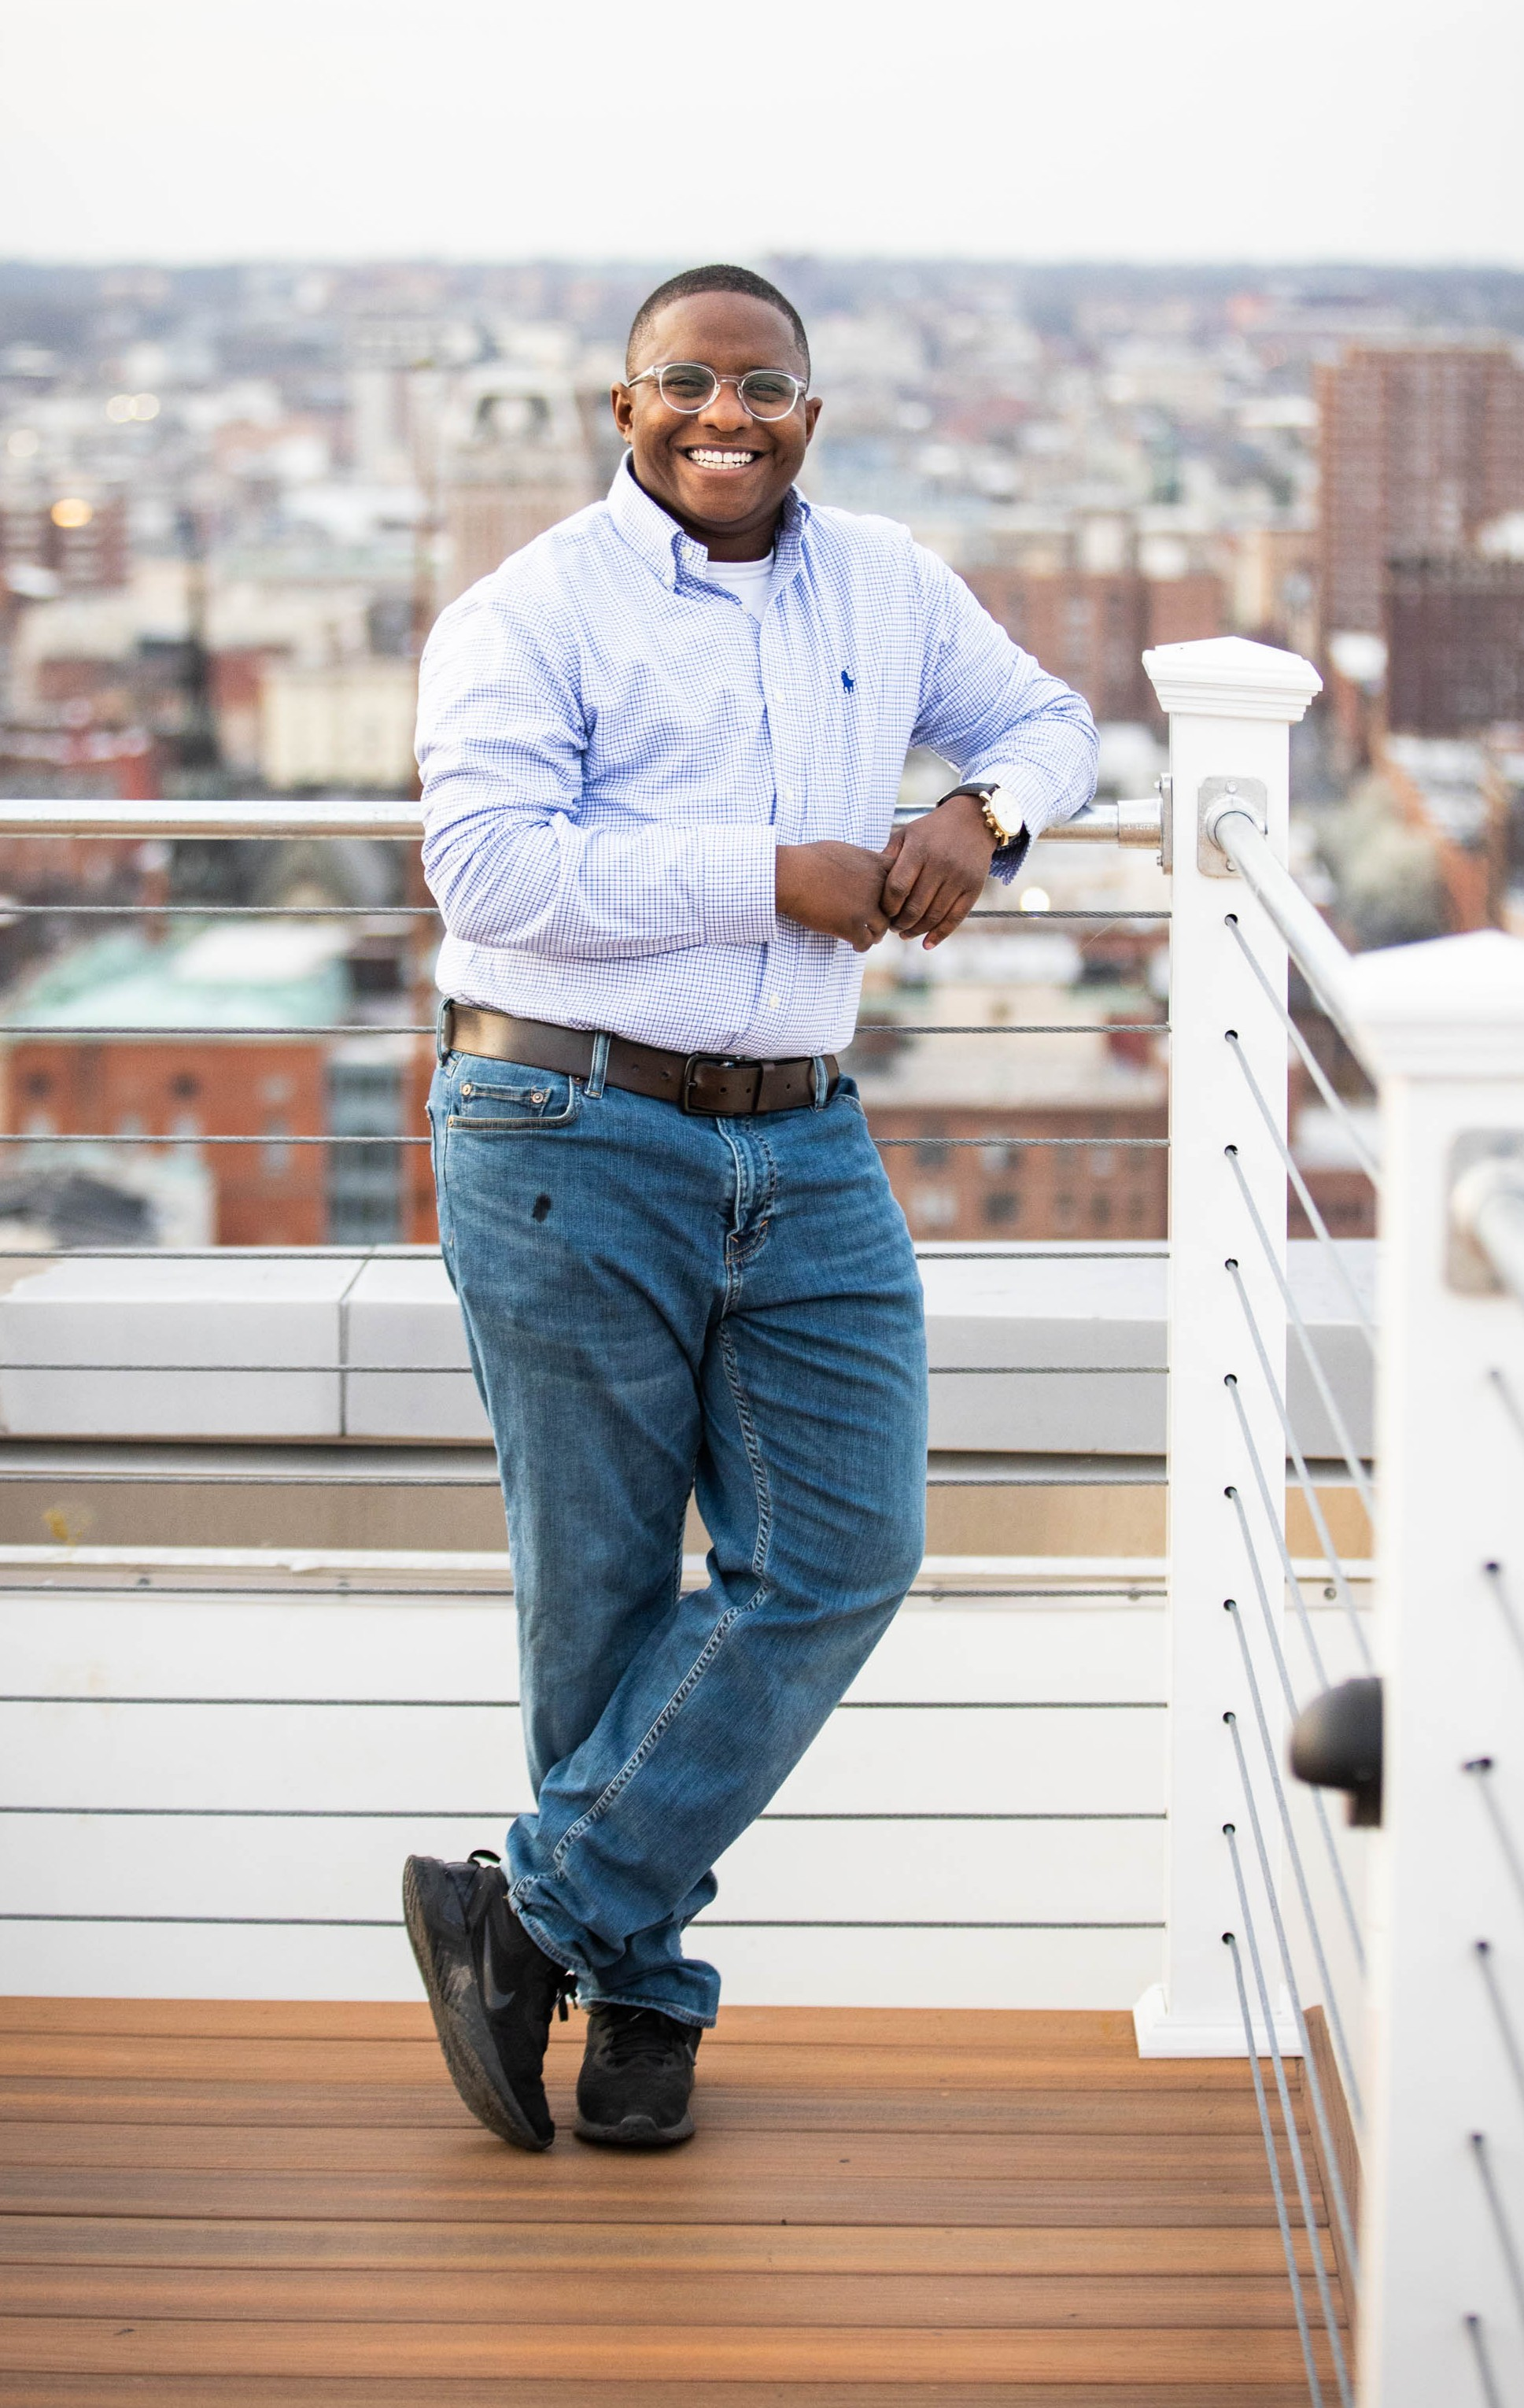 Andy Ross (He•Him) Development Director - Andy was born in Florida and raised in Queens, NY. Andy's pronouns include he/him/his. Andy is a man of trans* experience who's family migrated from Jamaica to NYC. Andy and some friends started the first Gay Straight Alliance at his high school in 2003. Andy was a science nerd in high school and was a semi-finalist in the NYC Science and Engineering Fair. Andy graduated from Stony Brook University with a major in Sociology. Andy has worked in the insurance industry for the last five years and currently is an appraiser for one of the largest auto insurers in the US. Prior to working in insurance, Andy worked at Equinox and Starbucks. Andy's work experience has made him analytical of corporate social responsibility as it applies to the representation of all minority groups within a corporate structure.In Andy's free time he likes to hike, make craft soaps, listen to music, and write. Andy enjoys the peace and tranquility of being in nature. Andy is also interested in herbalism and likes to collect herbs for medicinal use.